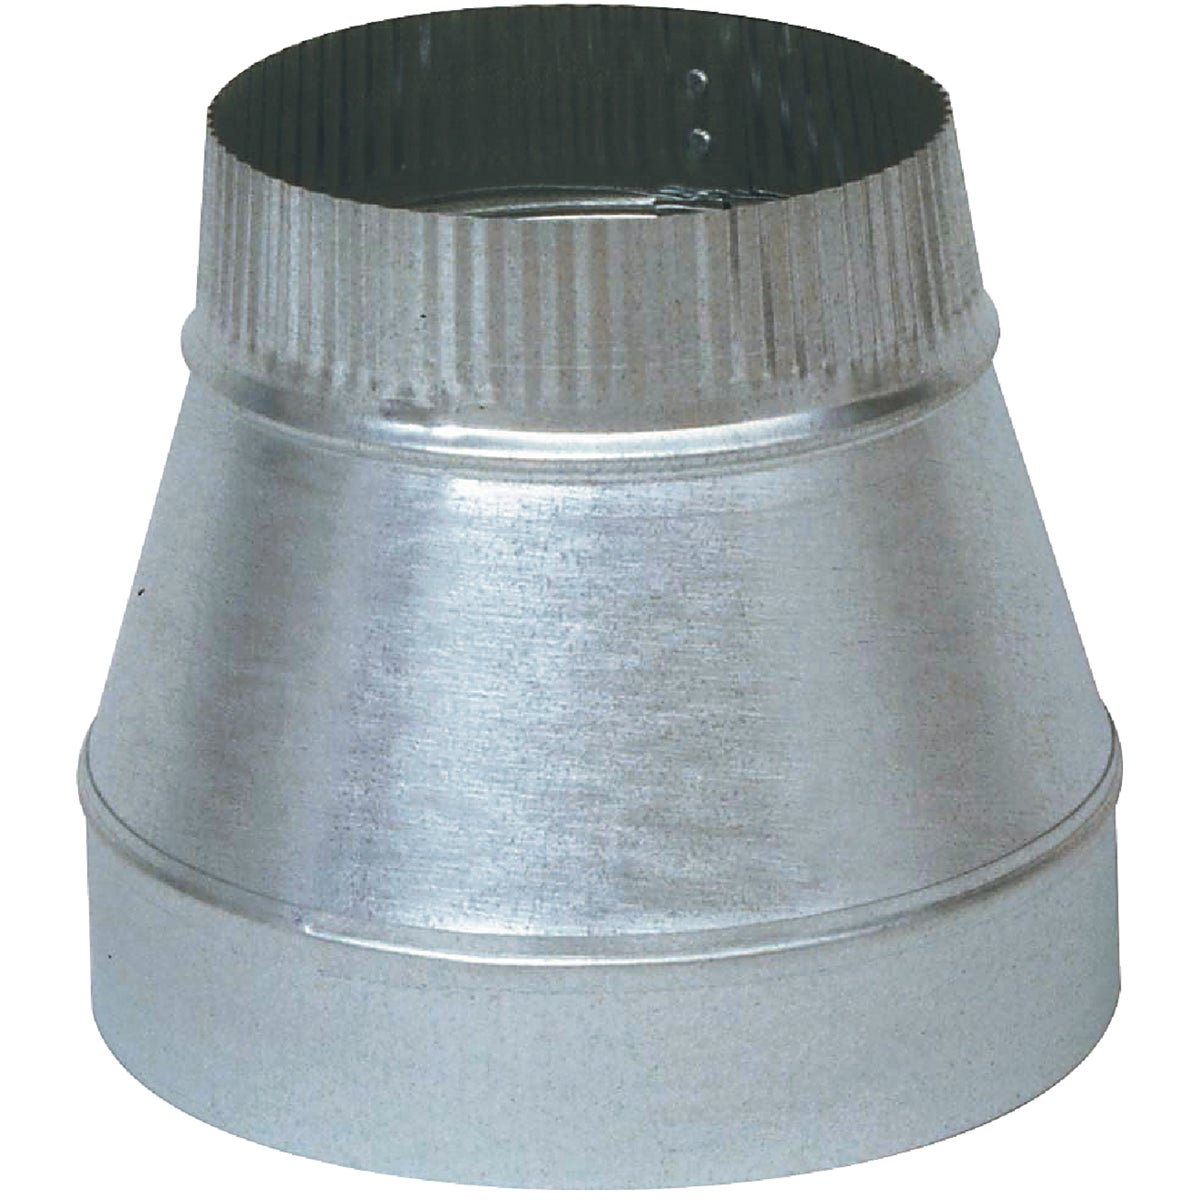 6X5 GALV REDUCER - GV1349 by Imperial Mfg Group